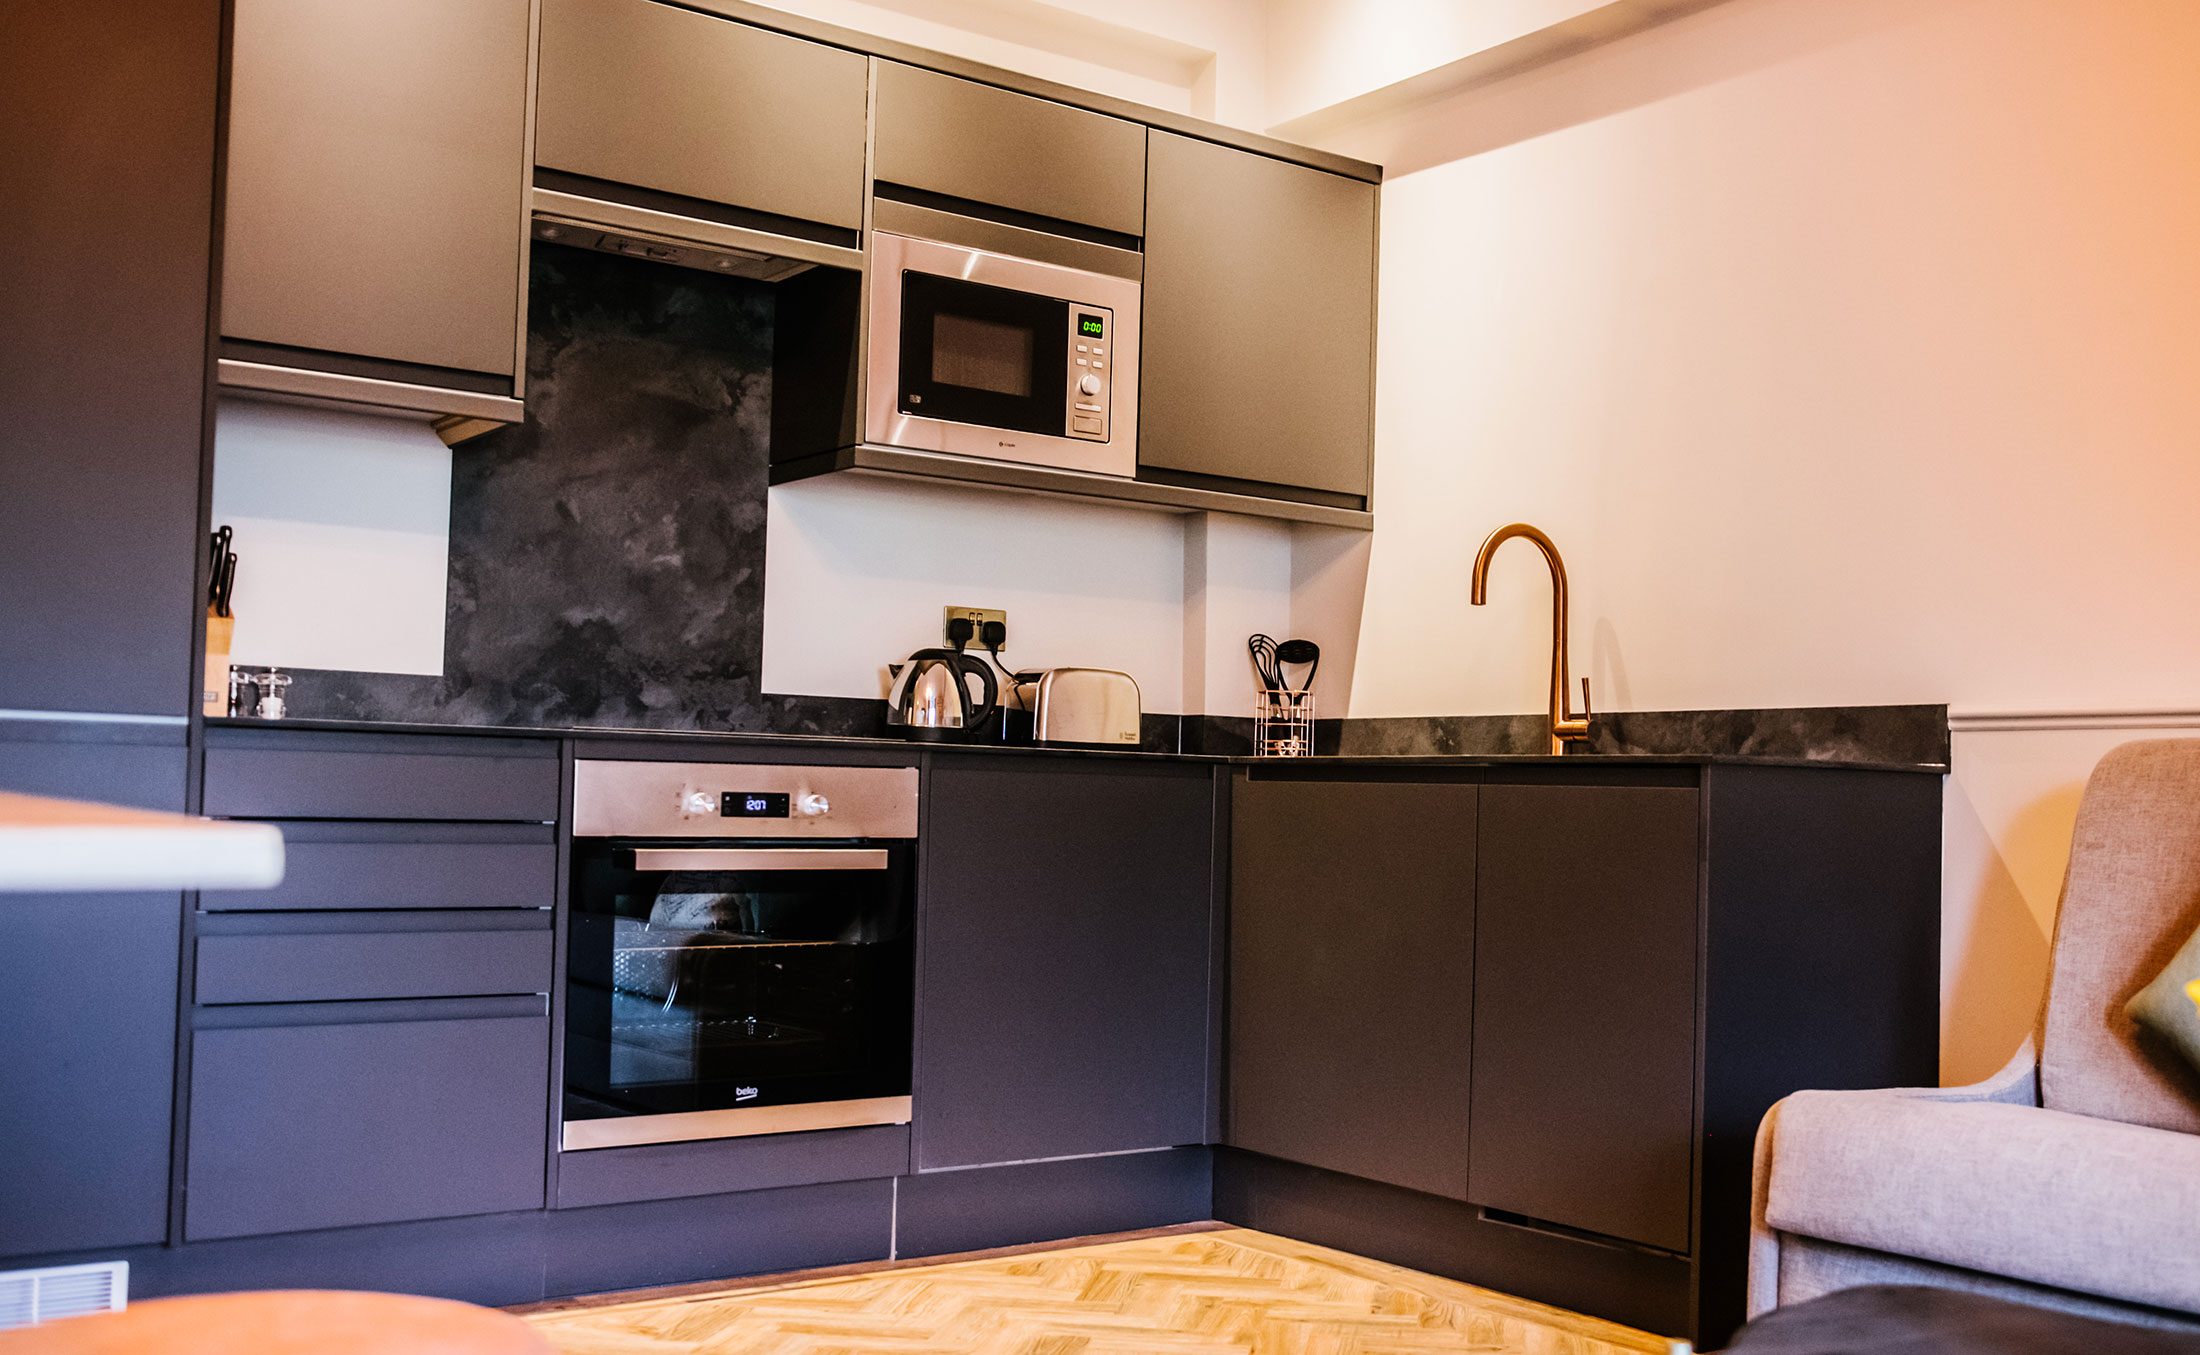 Self Catering Apartments Lytham St Annes